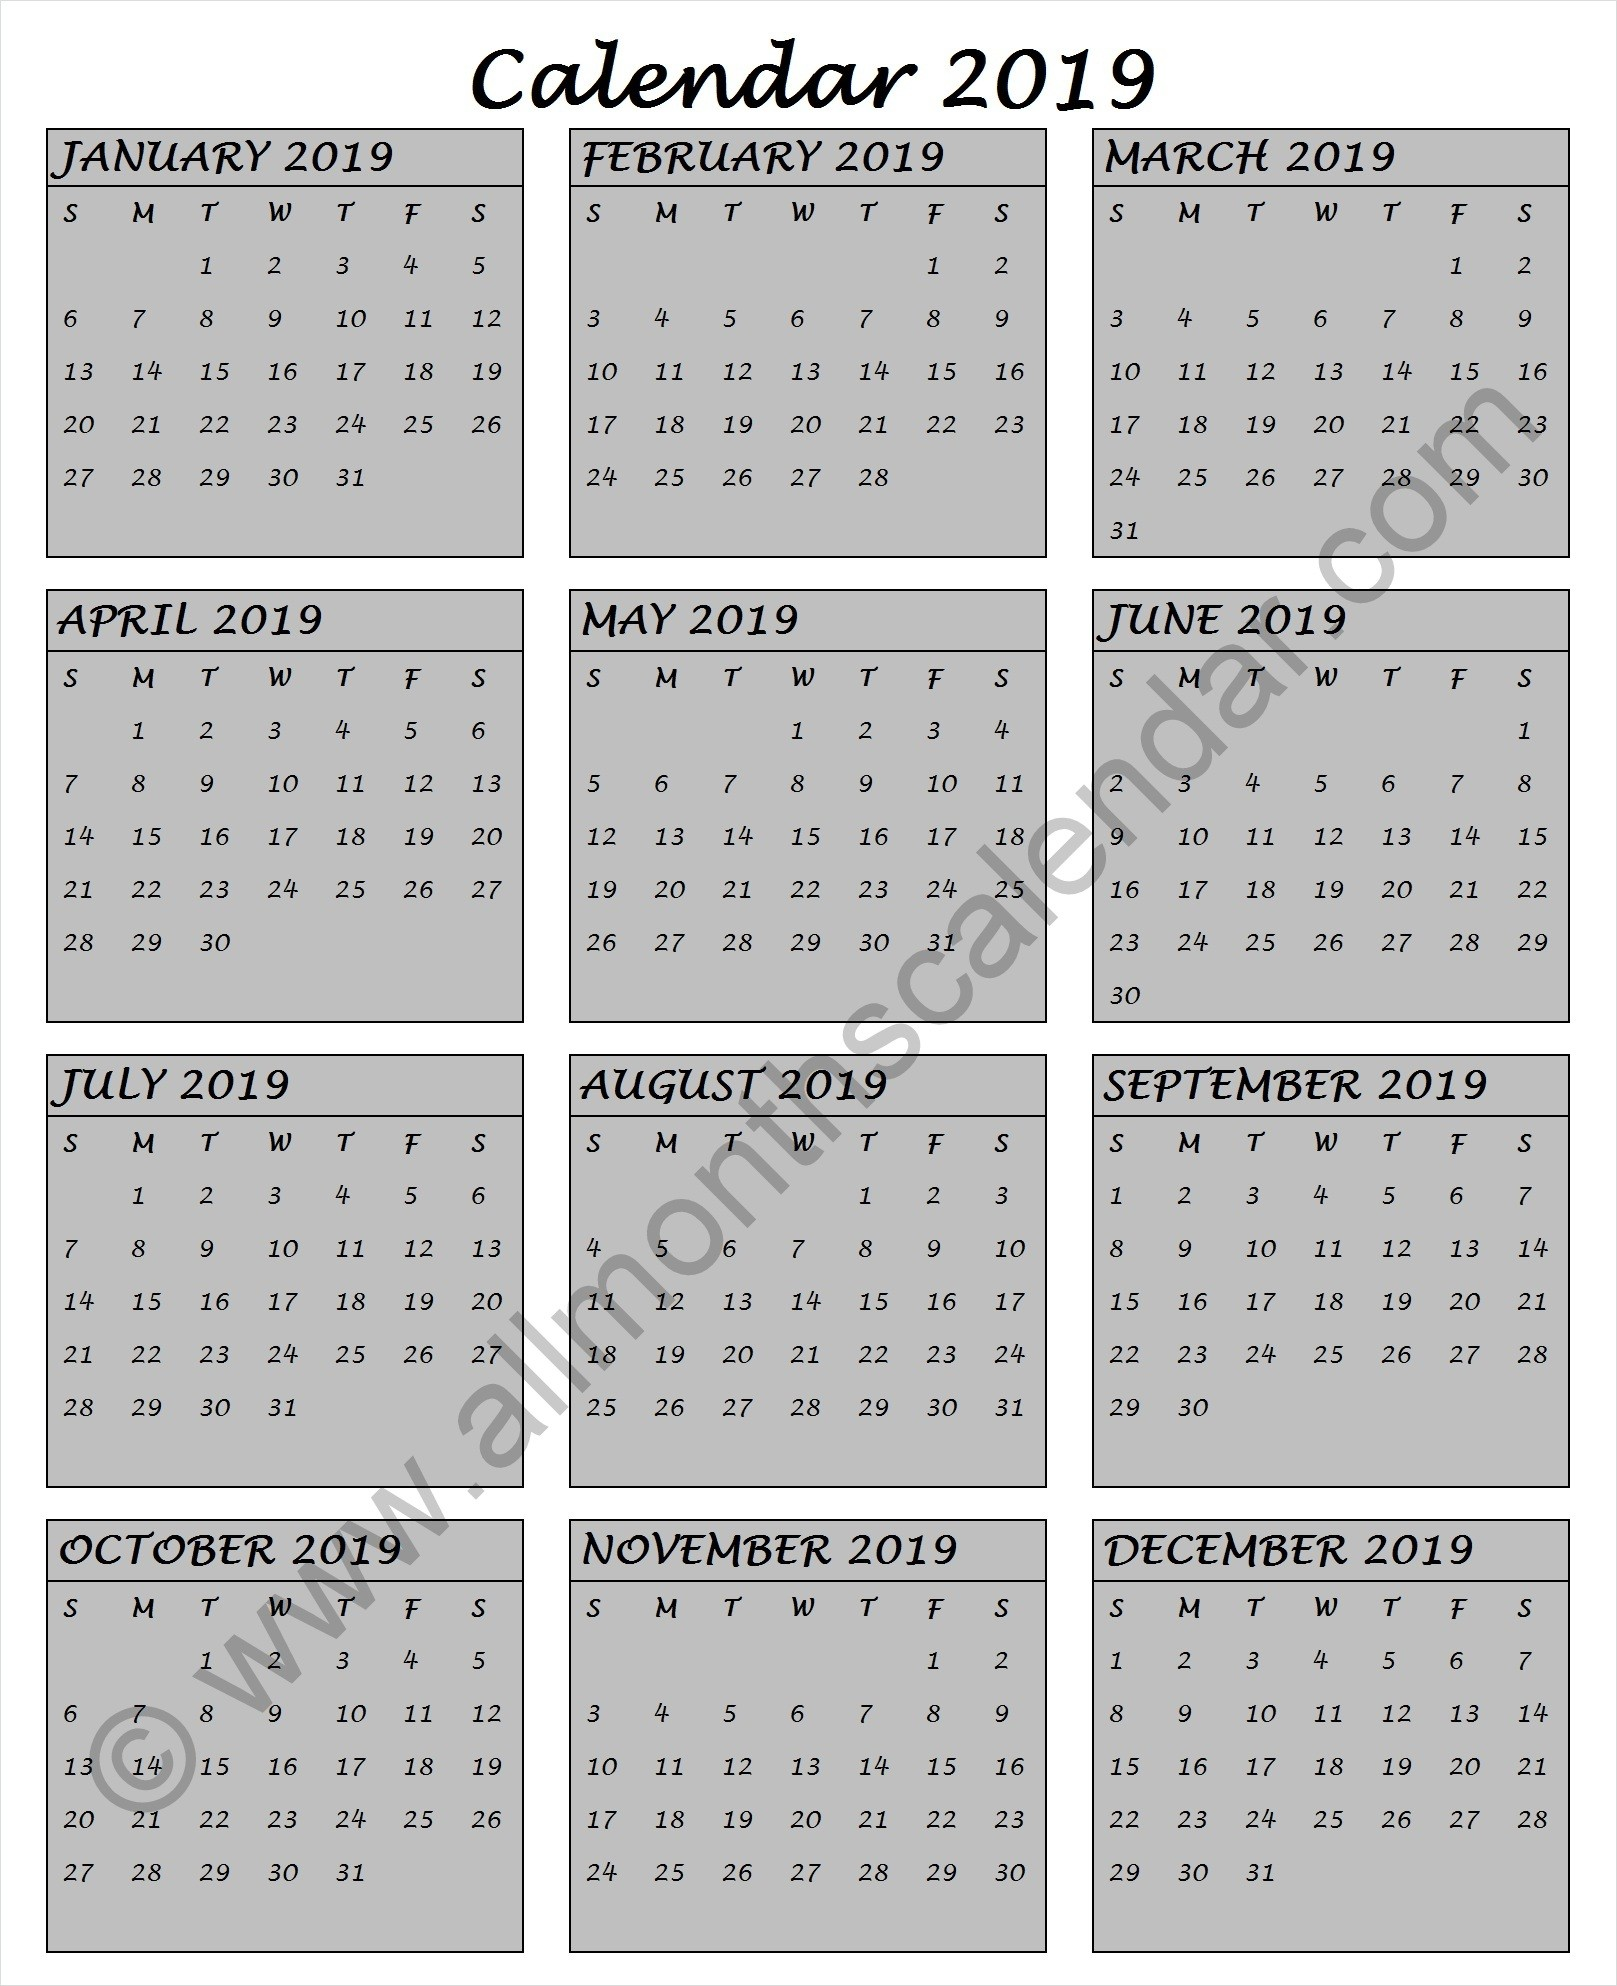 March 2019 Calendar Uk Printable Más Caliente August 2019 Calendar Excel Of March 2019 Calendar Uk Printable Más Recientes March 2019 Desktop Background Calendar